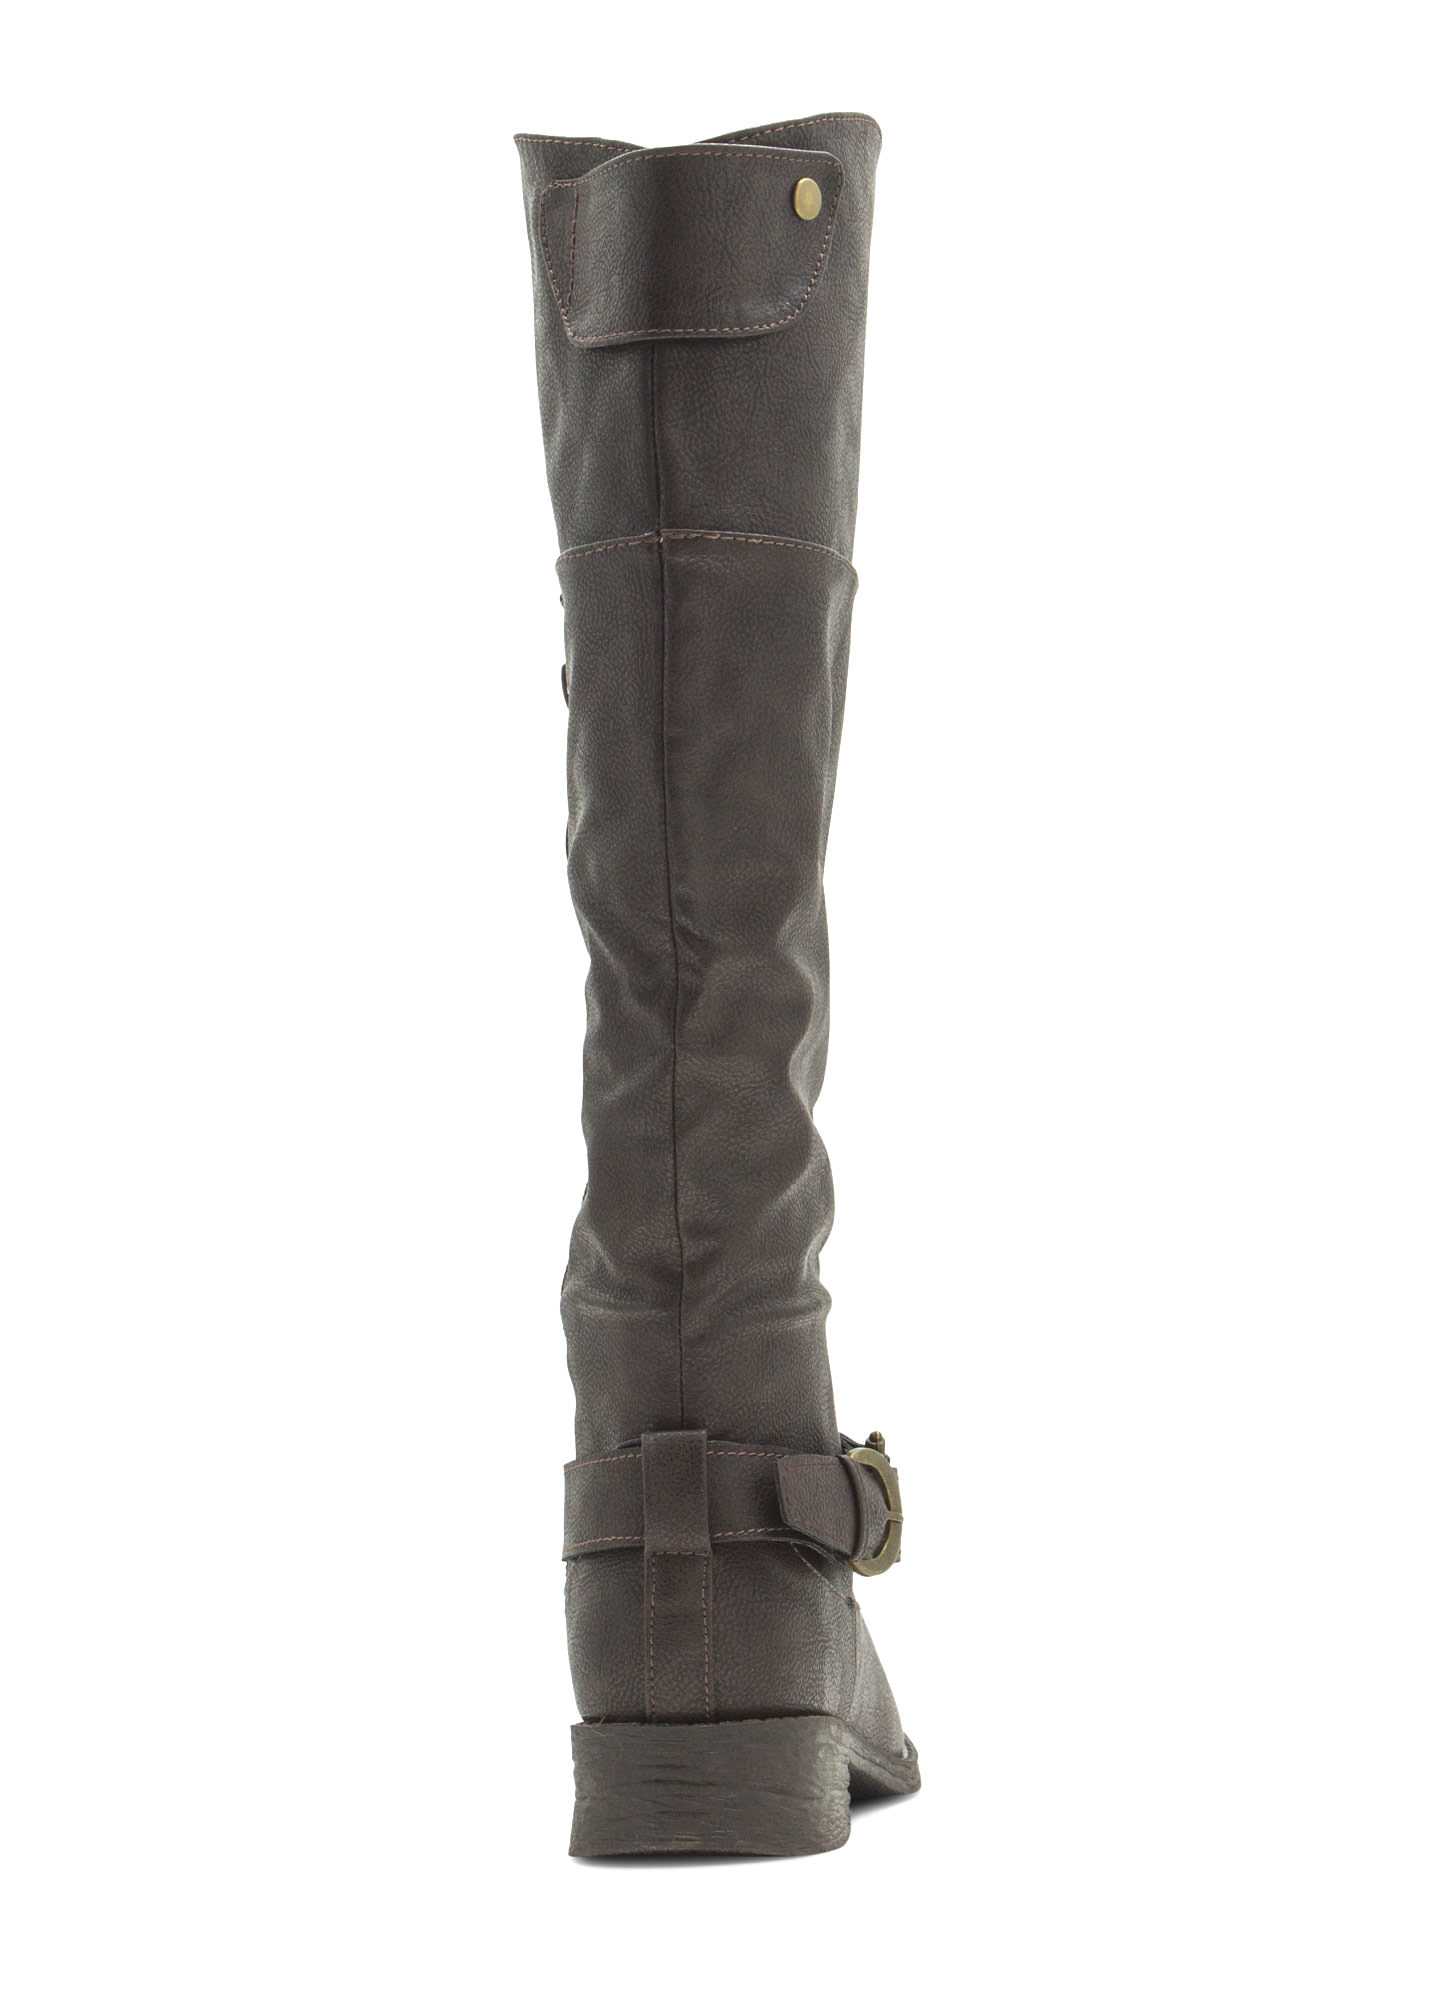 Time 2 Buckle Down Faux Leather Boots BROWN